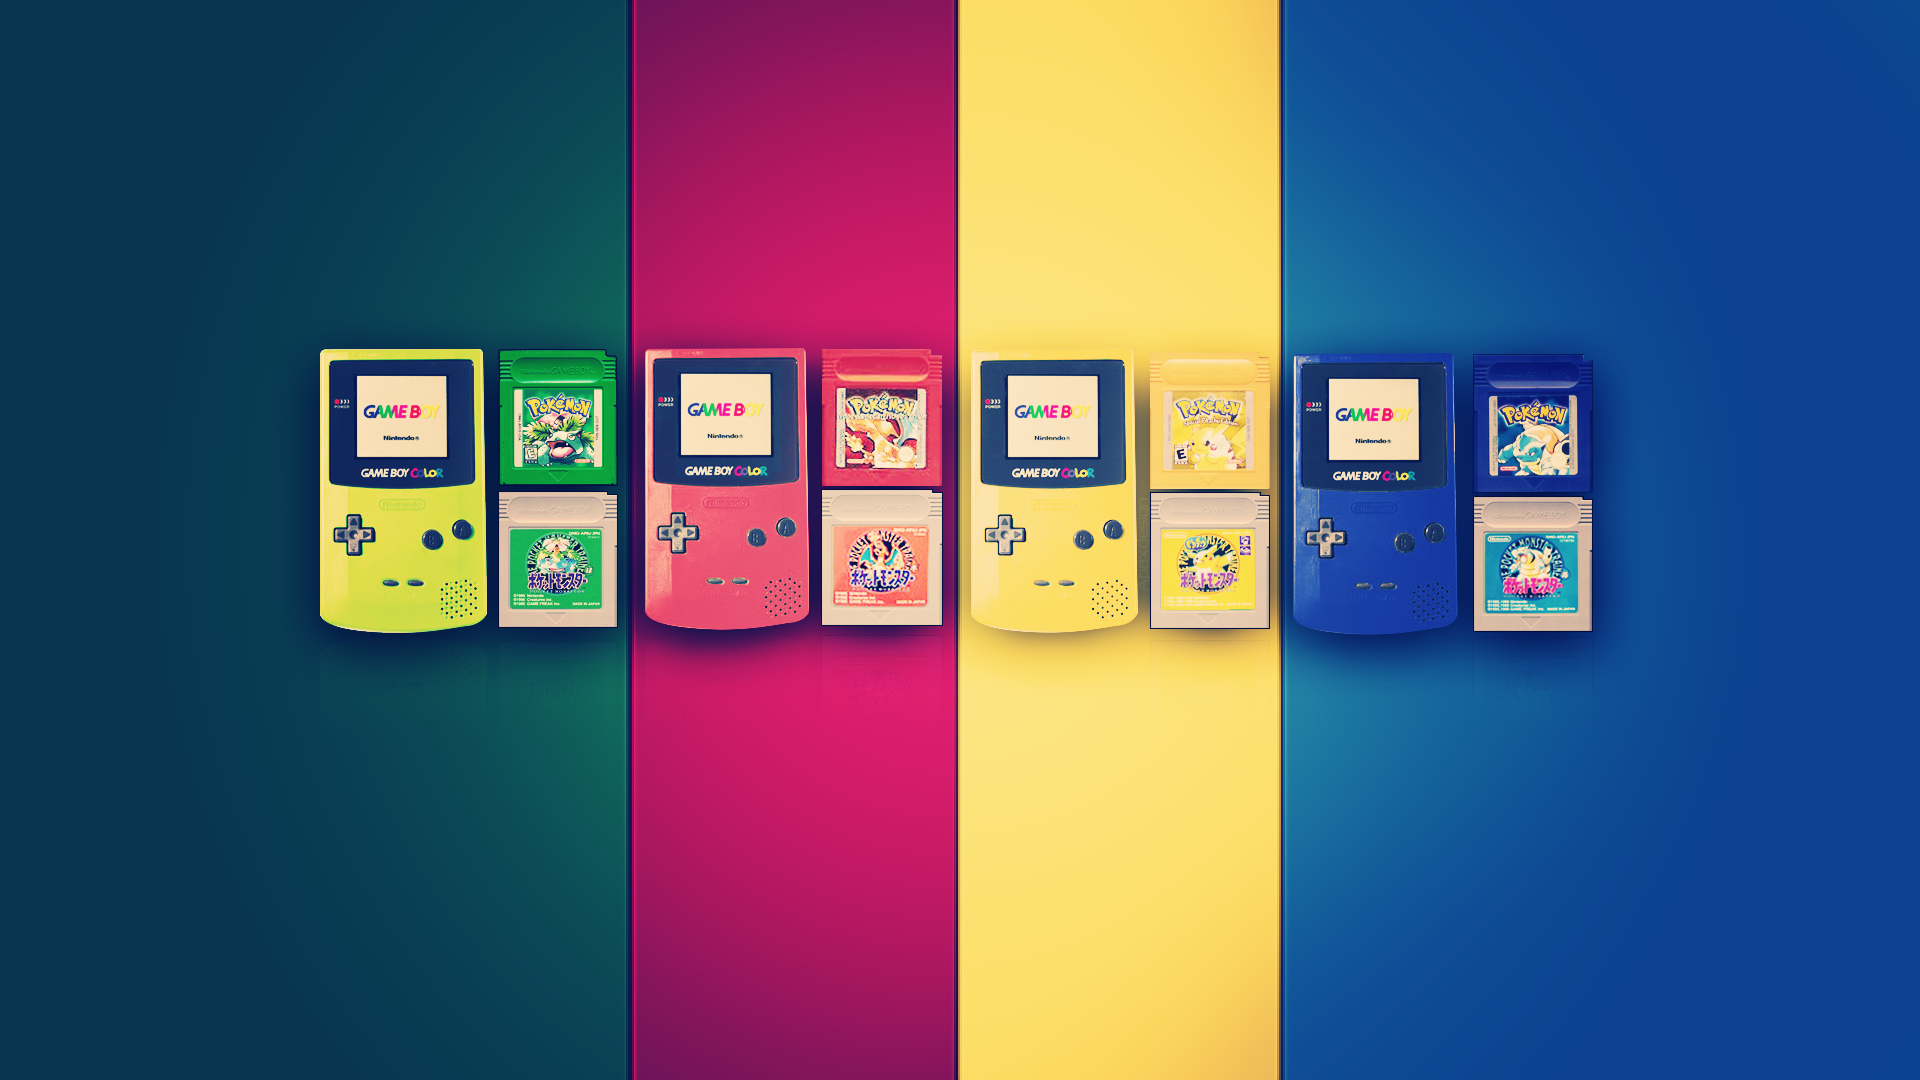 cool pokemon gameboy wallpaper 41885 Fond d'écran